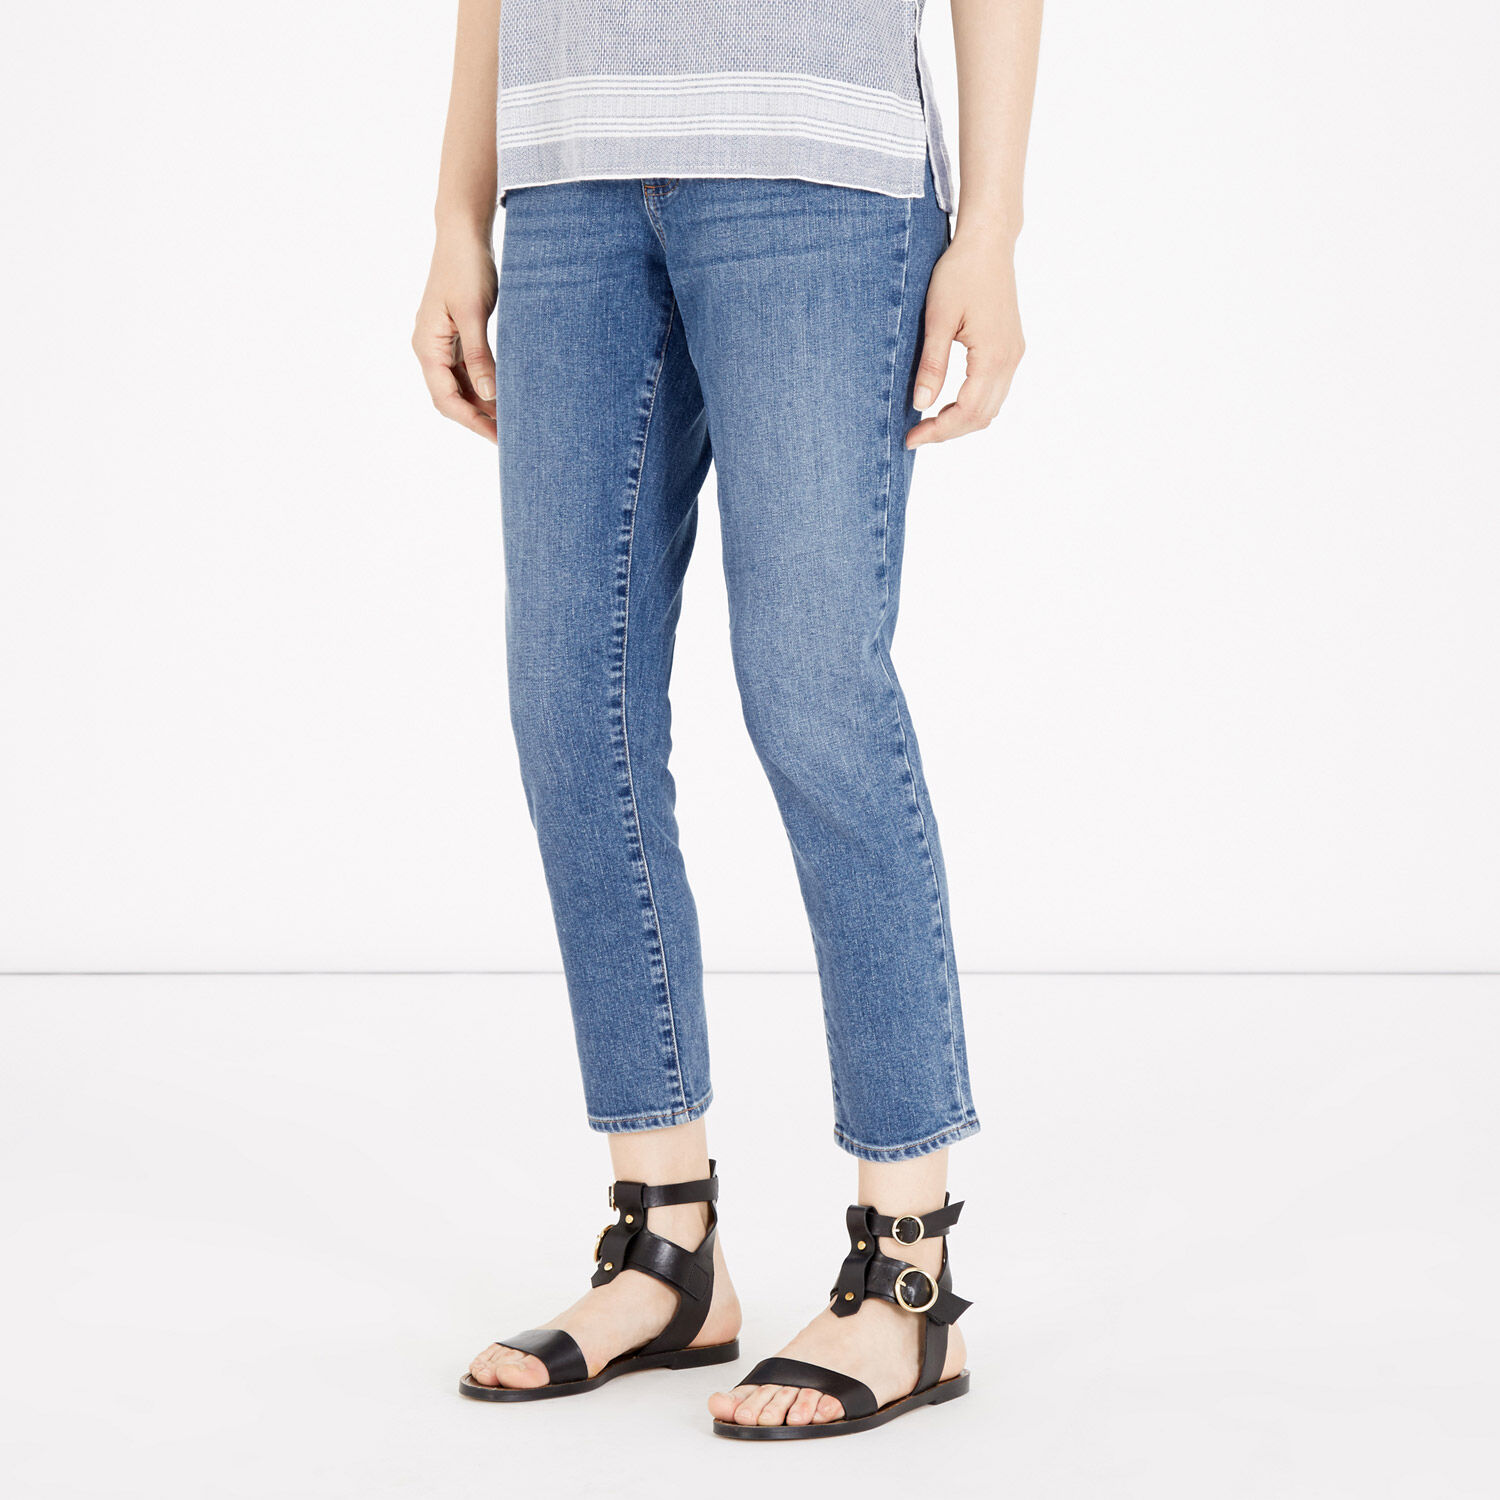 Warehouse, Relaxed Jean Light Wash Denim 1